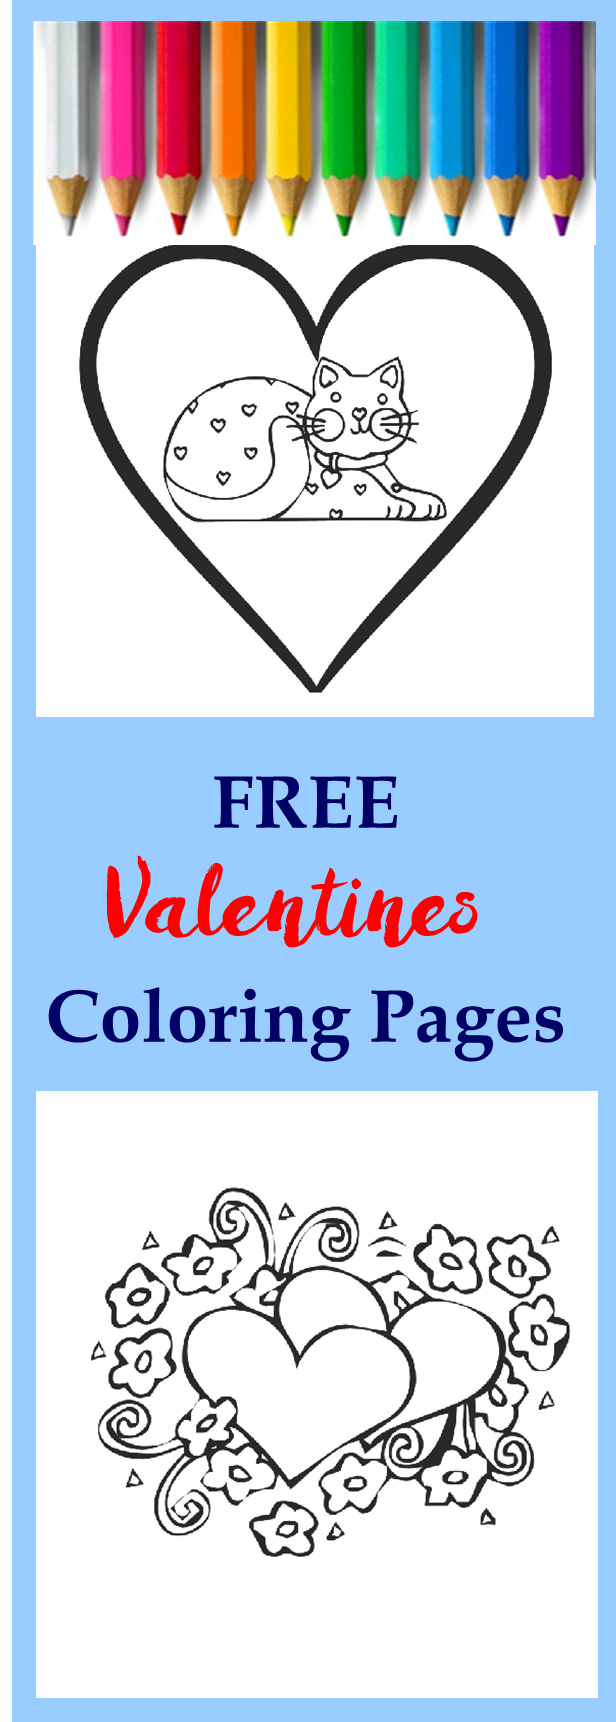 valentins day crafts an coloring pages - photo #19